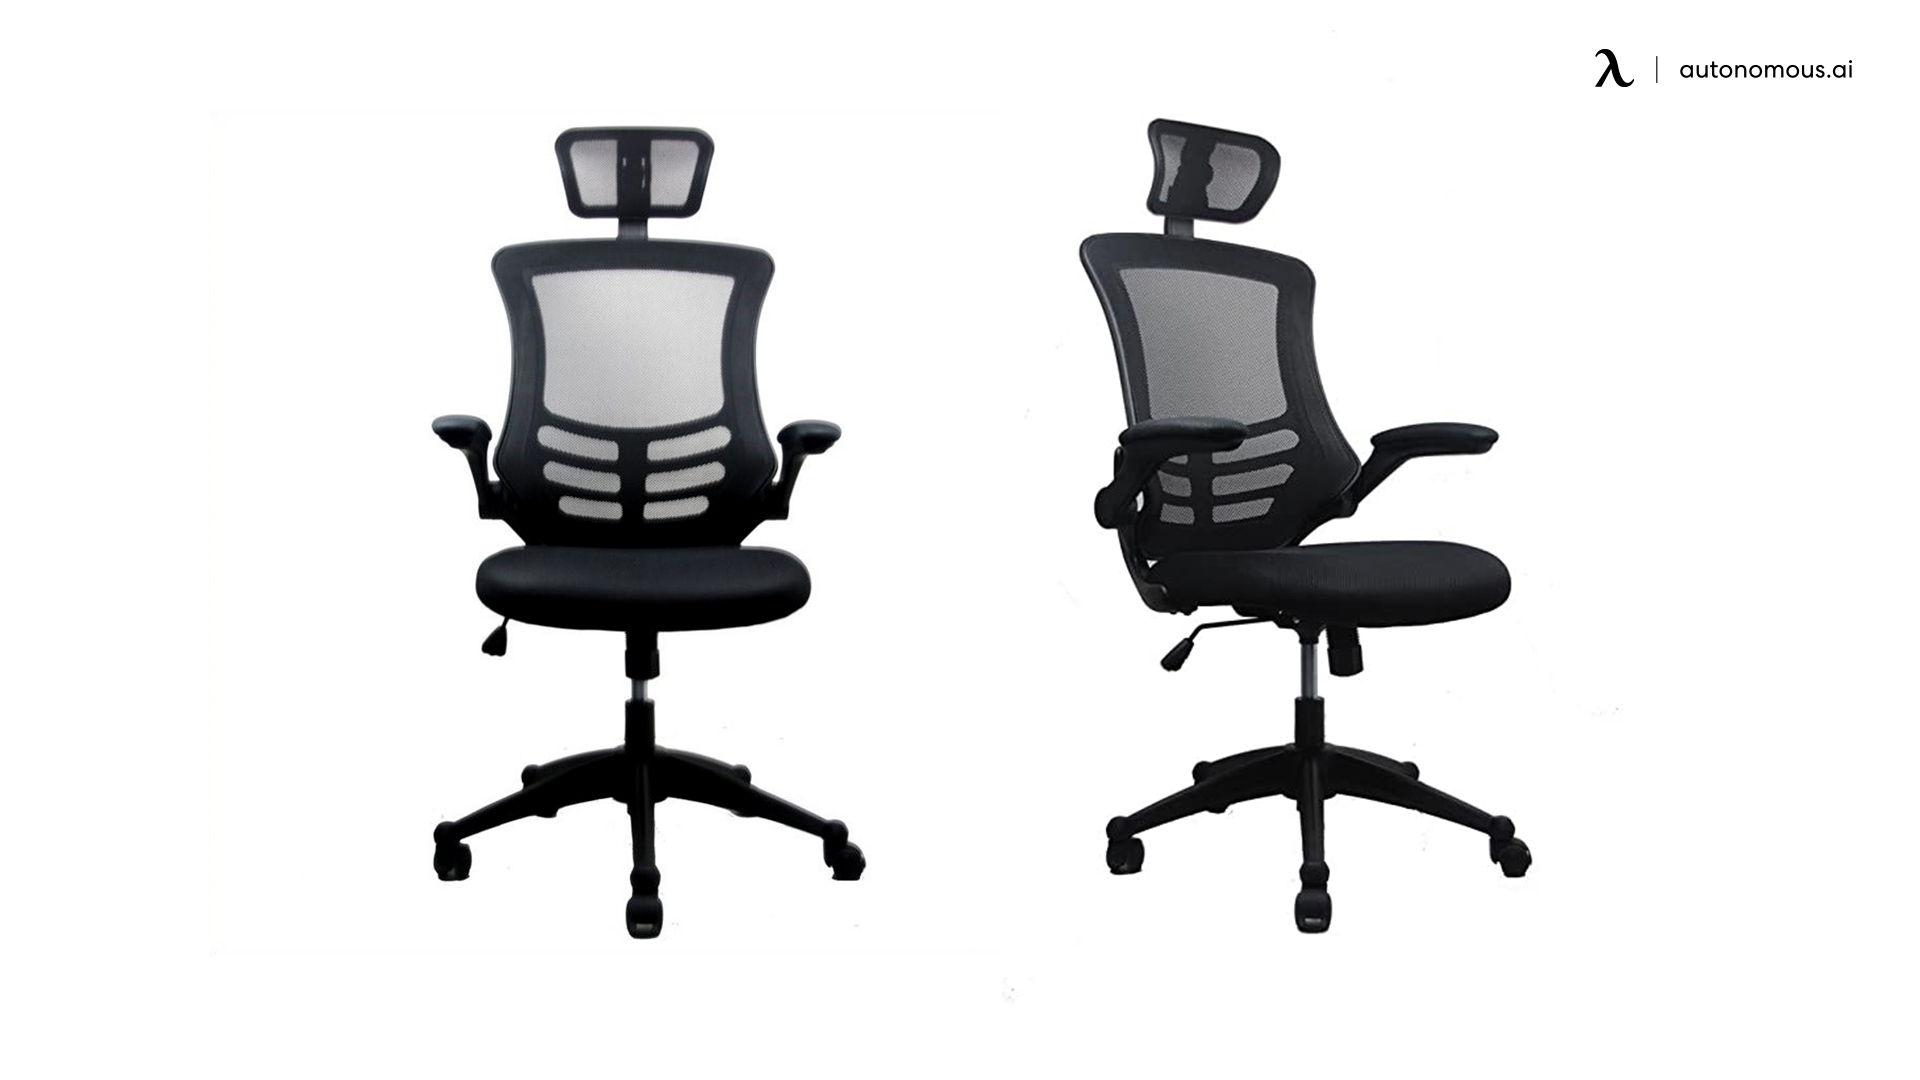 Leather office chair under $500